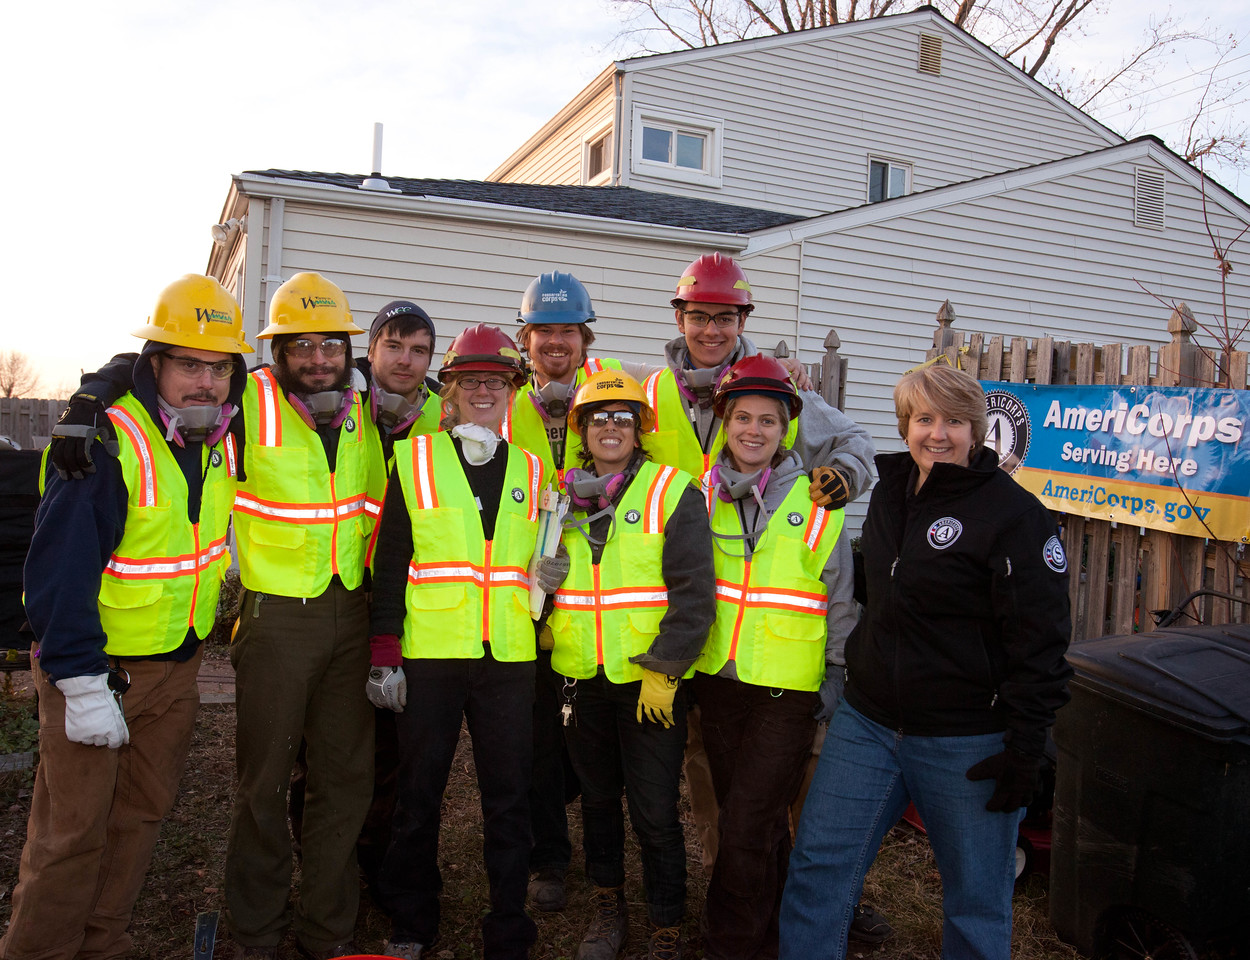 CNCS CEO Wendy Spencer, AmeriCorps members from the Washington Conservation Corps and AmeriCorps St. Louis in Union Beach, NJ. Corporation for National and Community Service Photo.